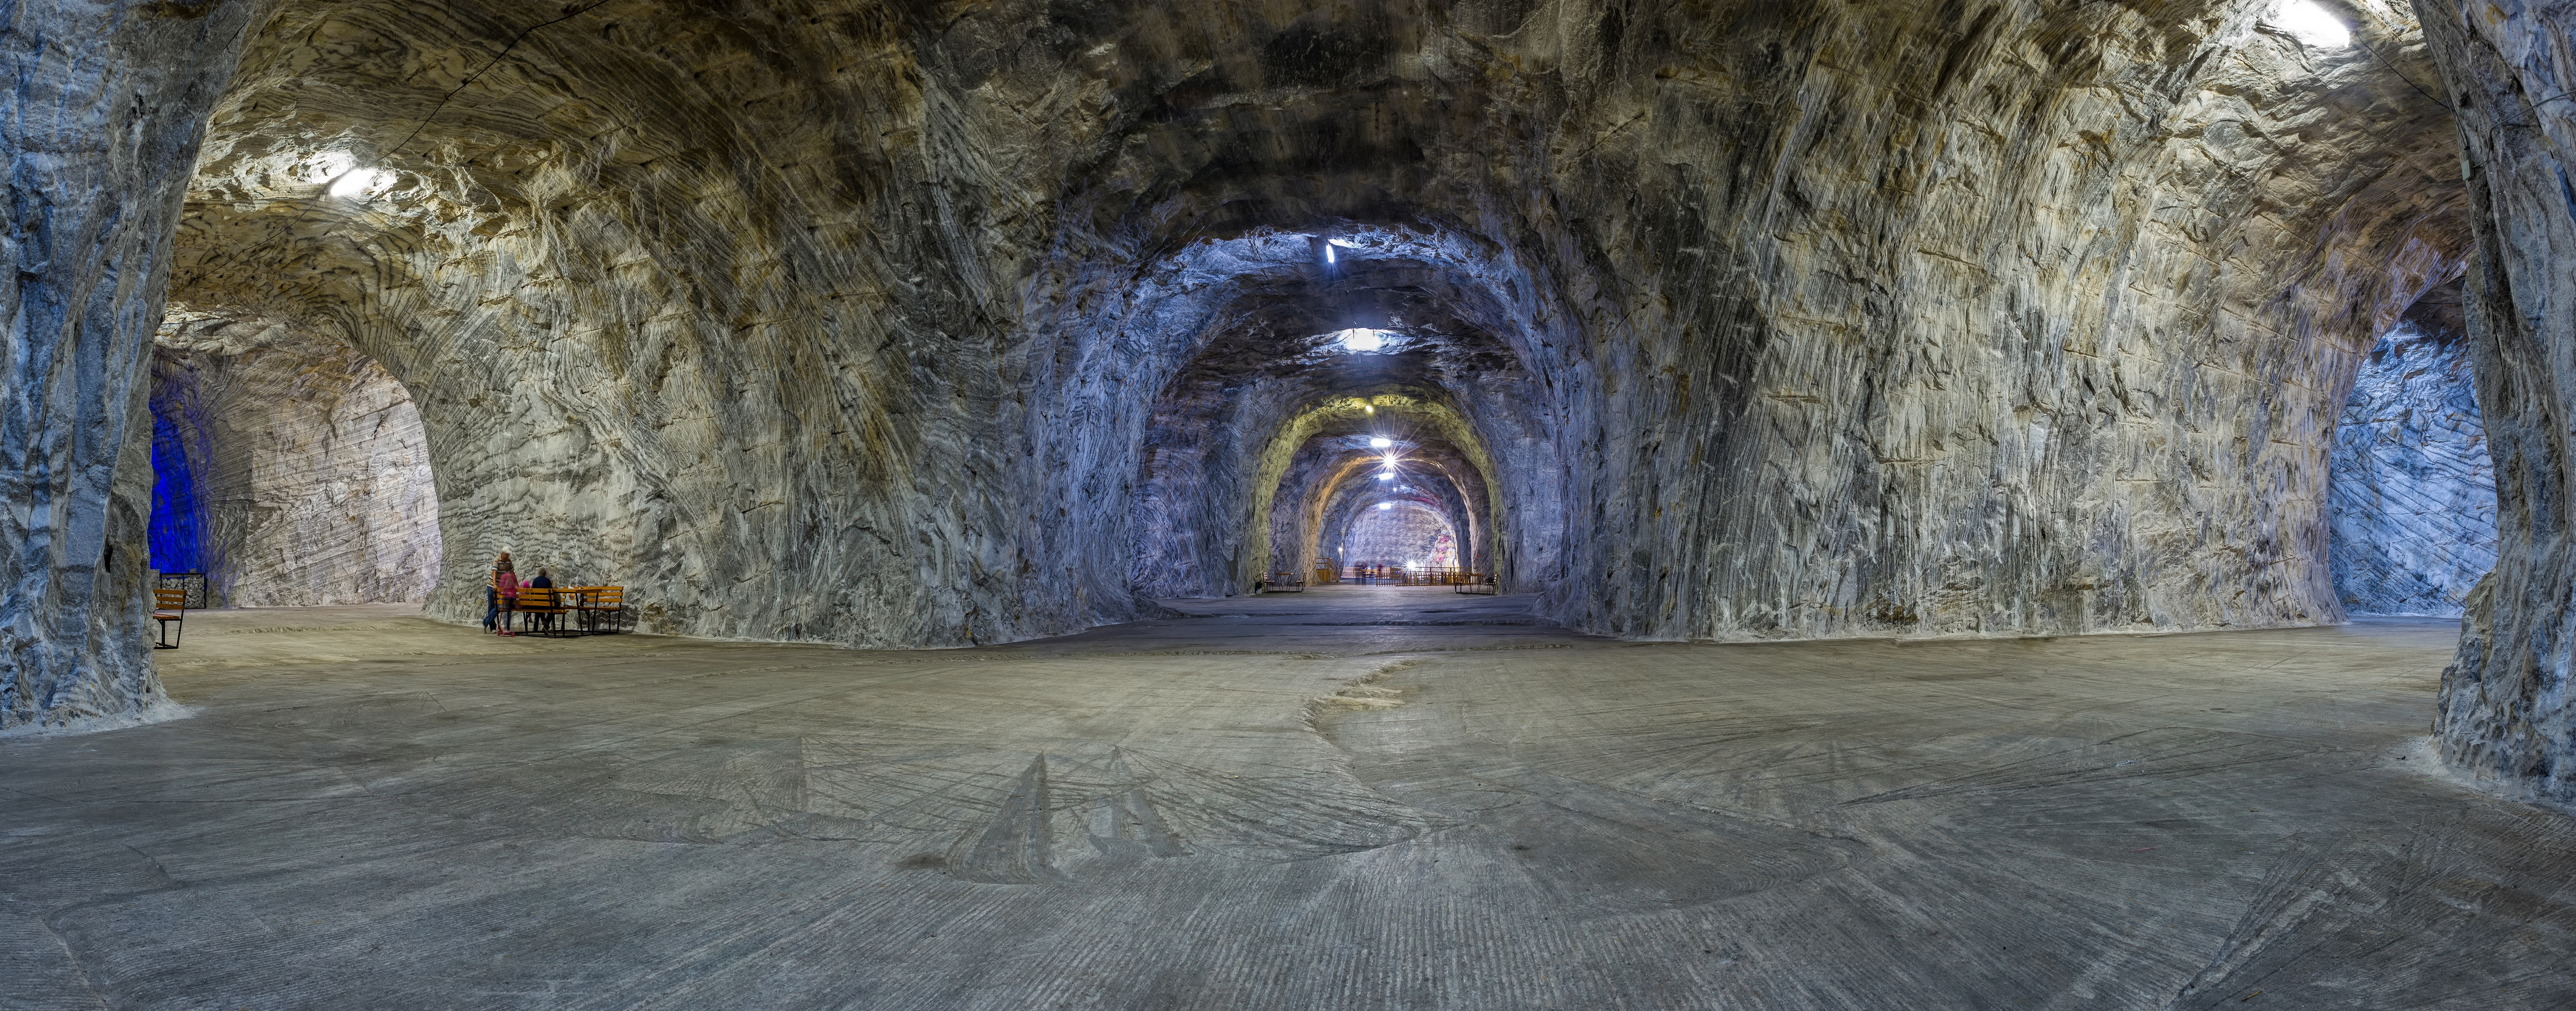 Panorama inside Salt mine from Targu Ocna, largest salt provider in Moldavia at a 240m depth, and it is due to its salt mine microclimate, an important natural treatment facility used in respiratory disease therapy.